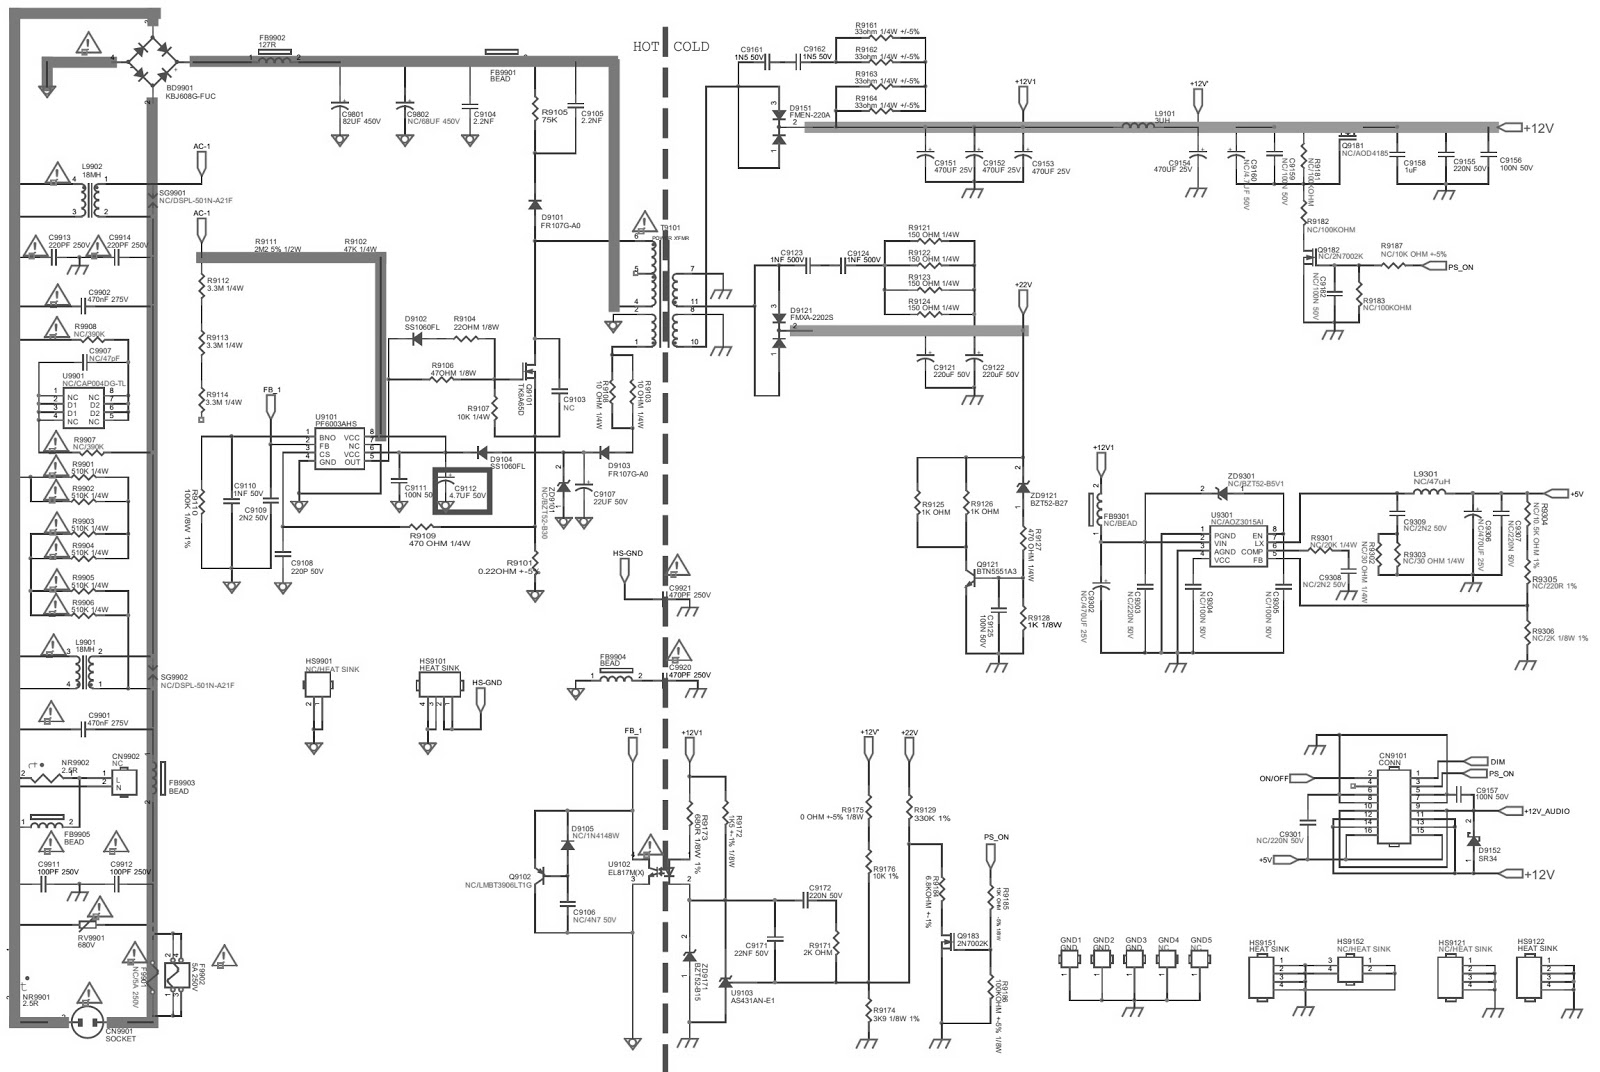 Electro help: Philips LCD TV SMPS Circuit Diagrams